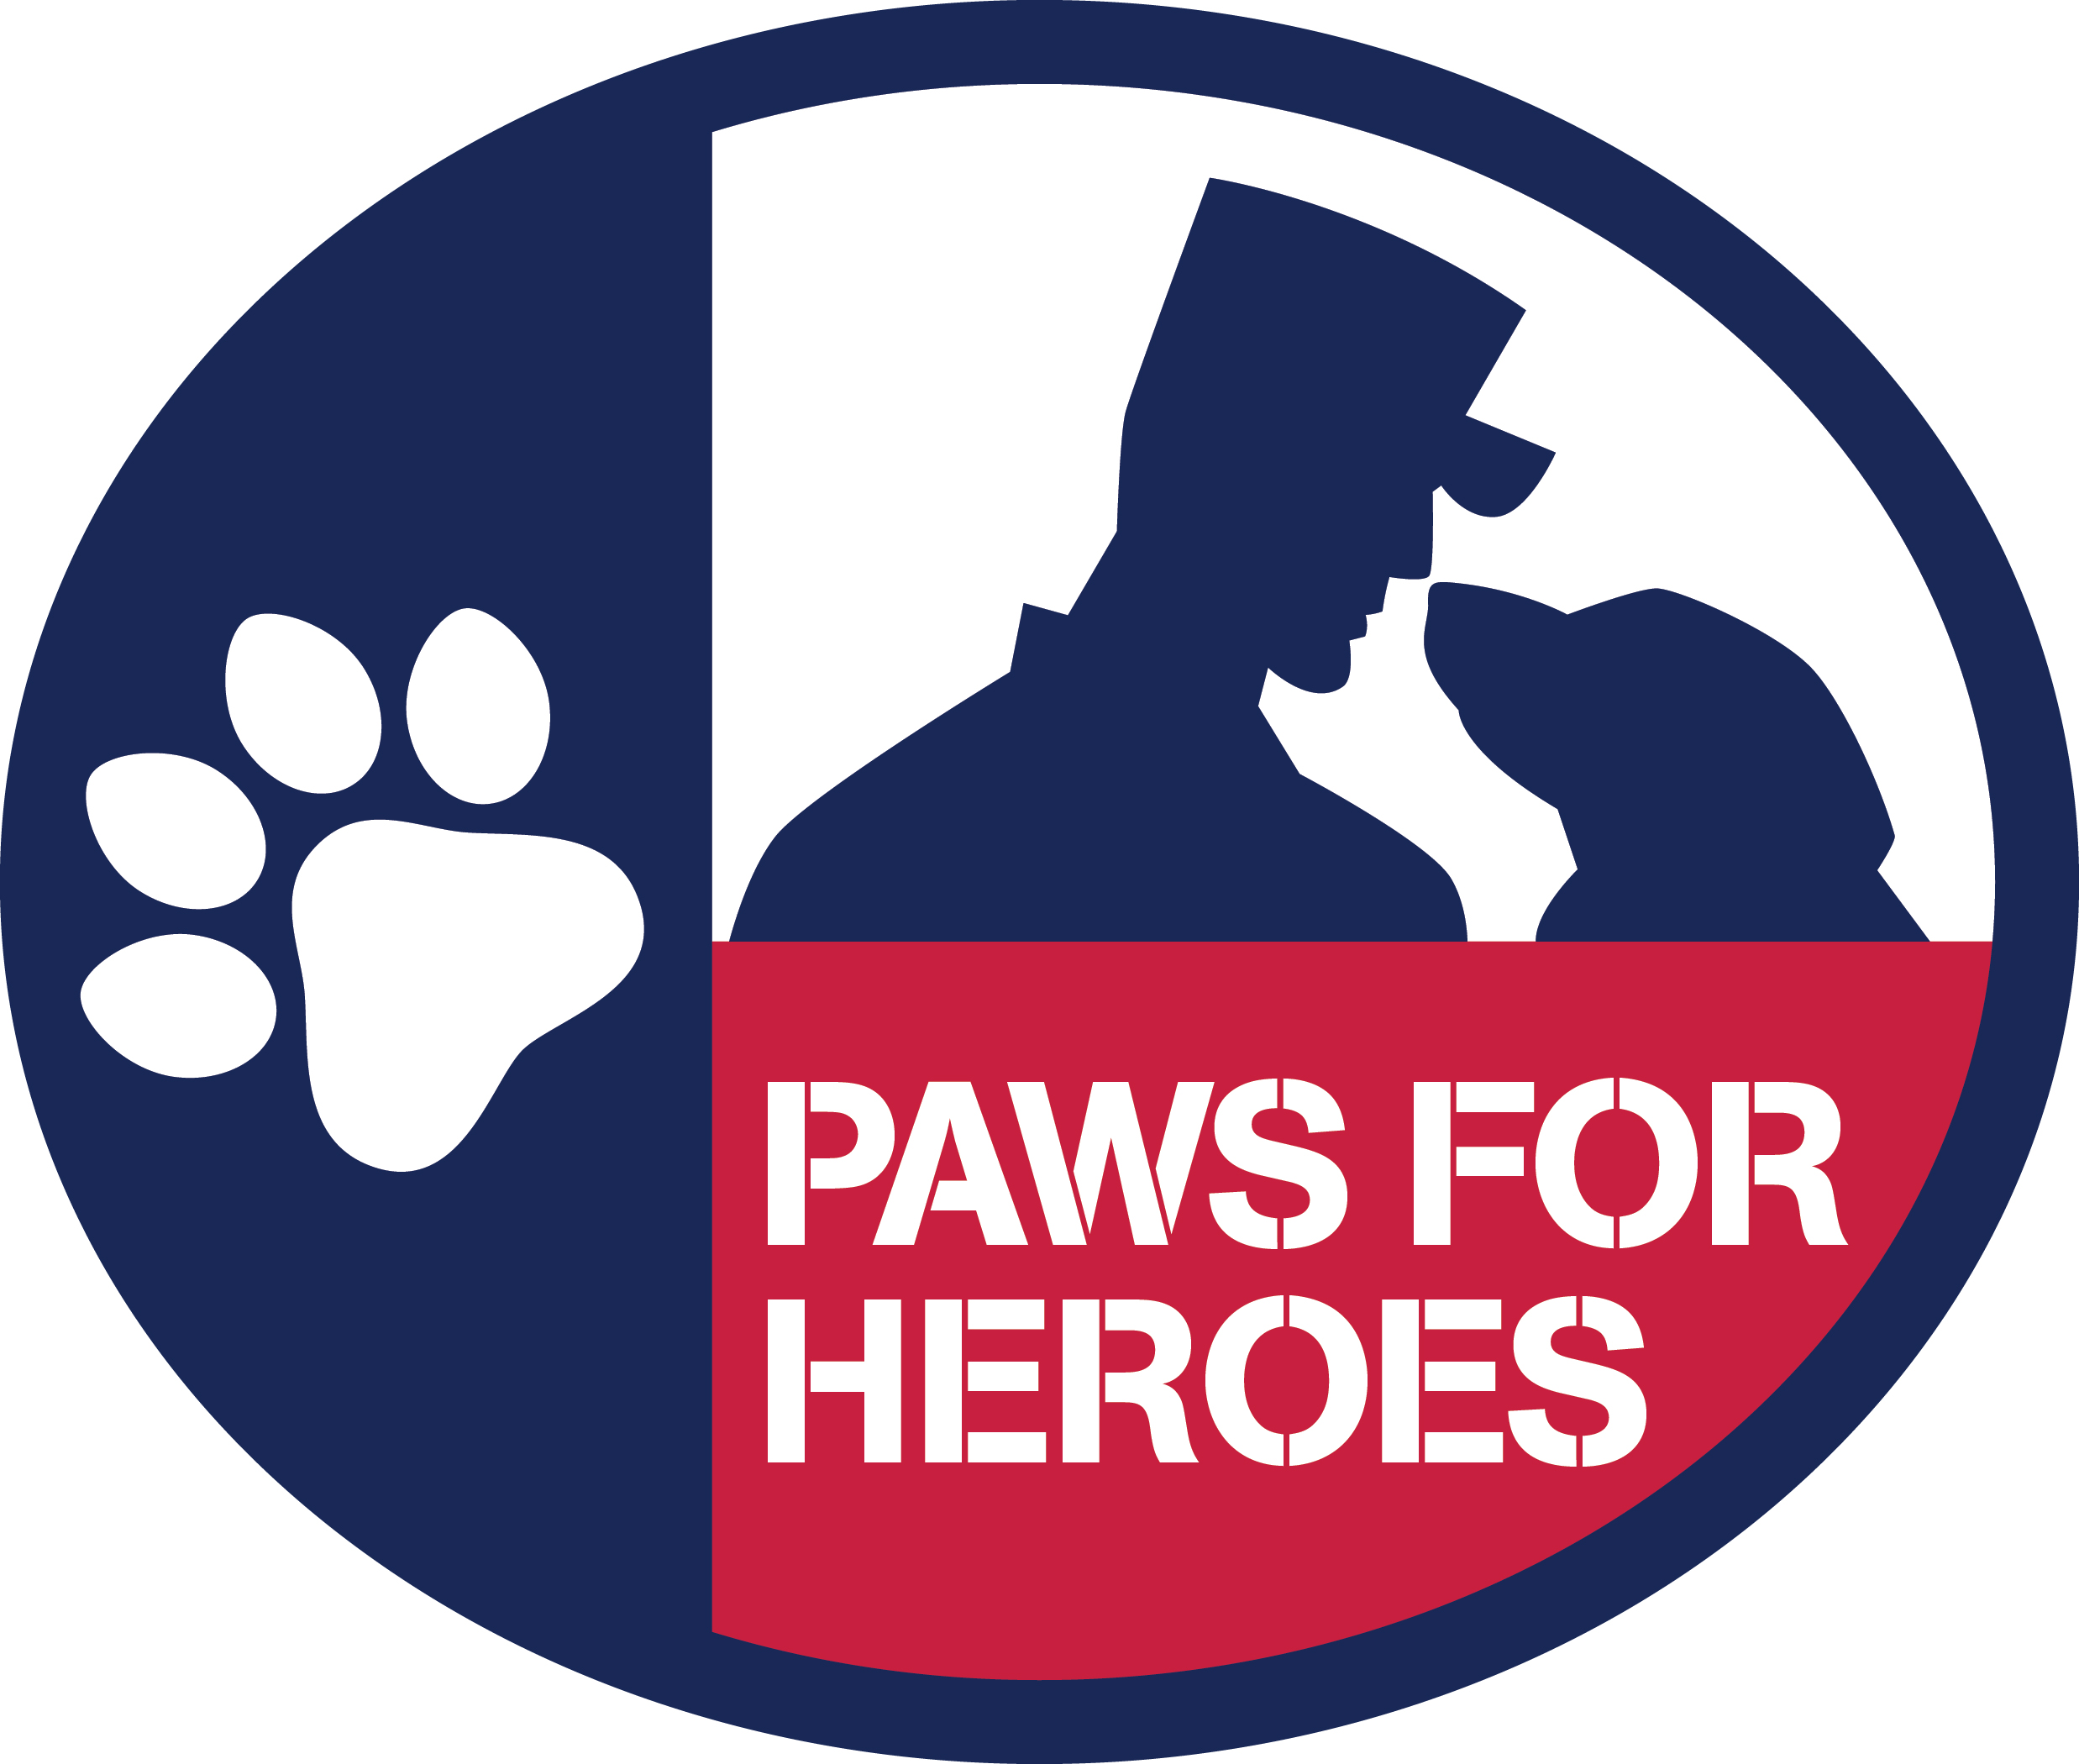 Paws for Heroes.JPG